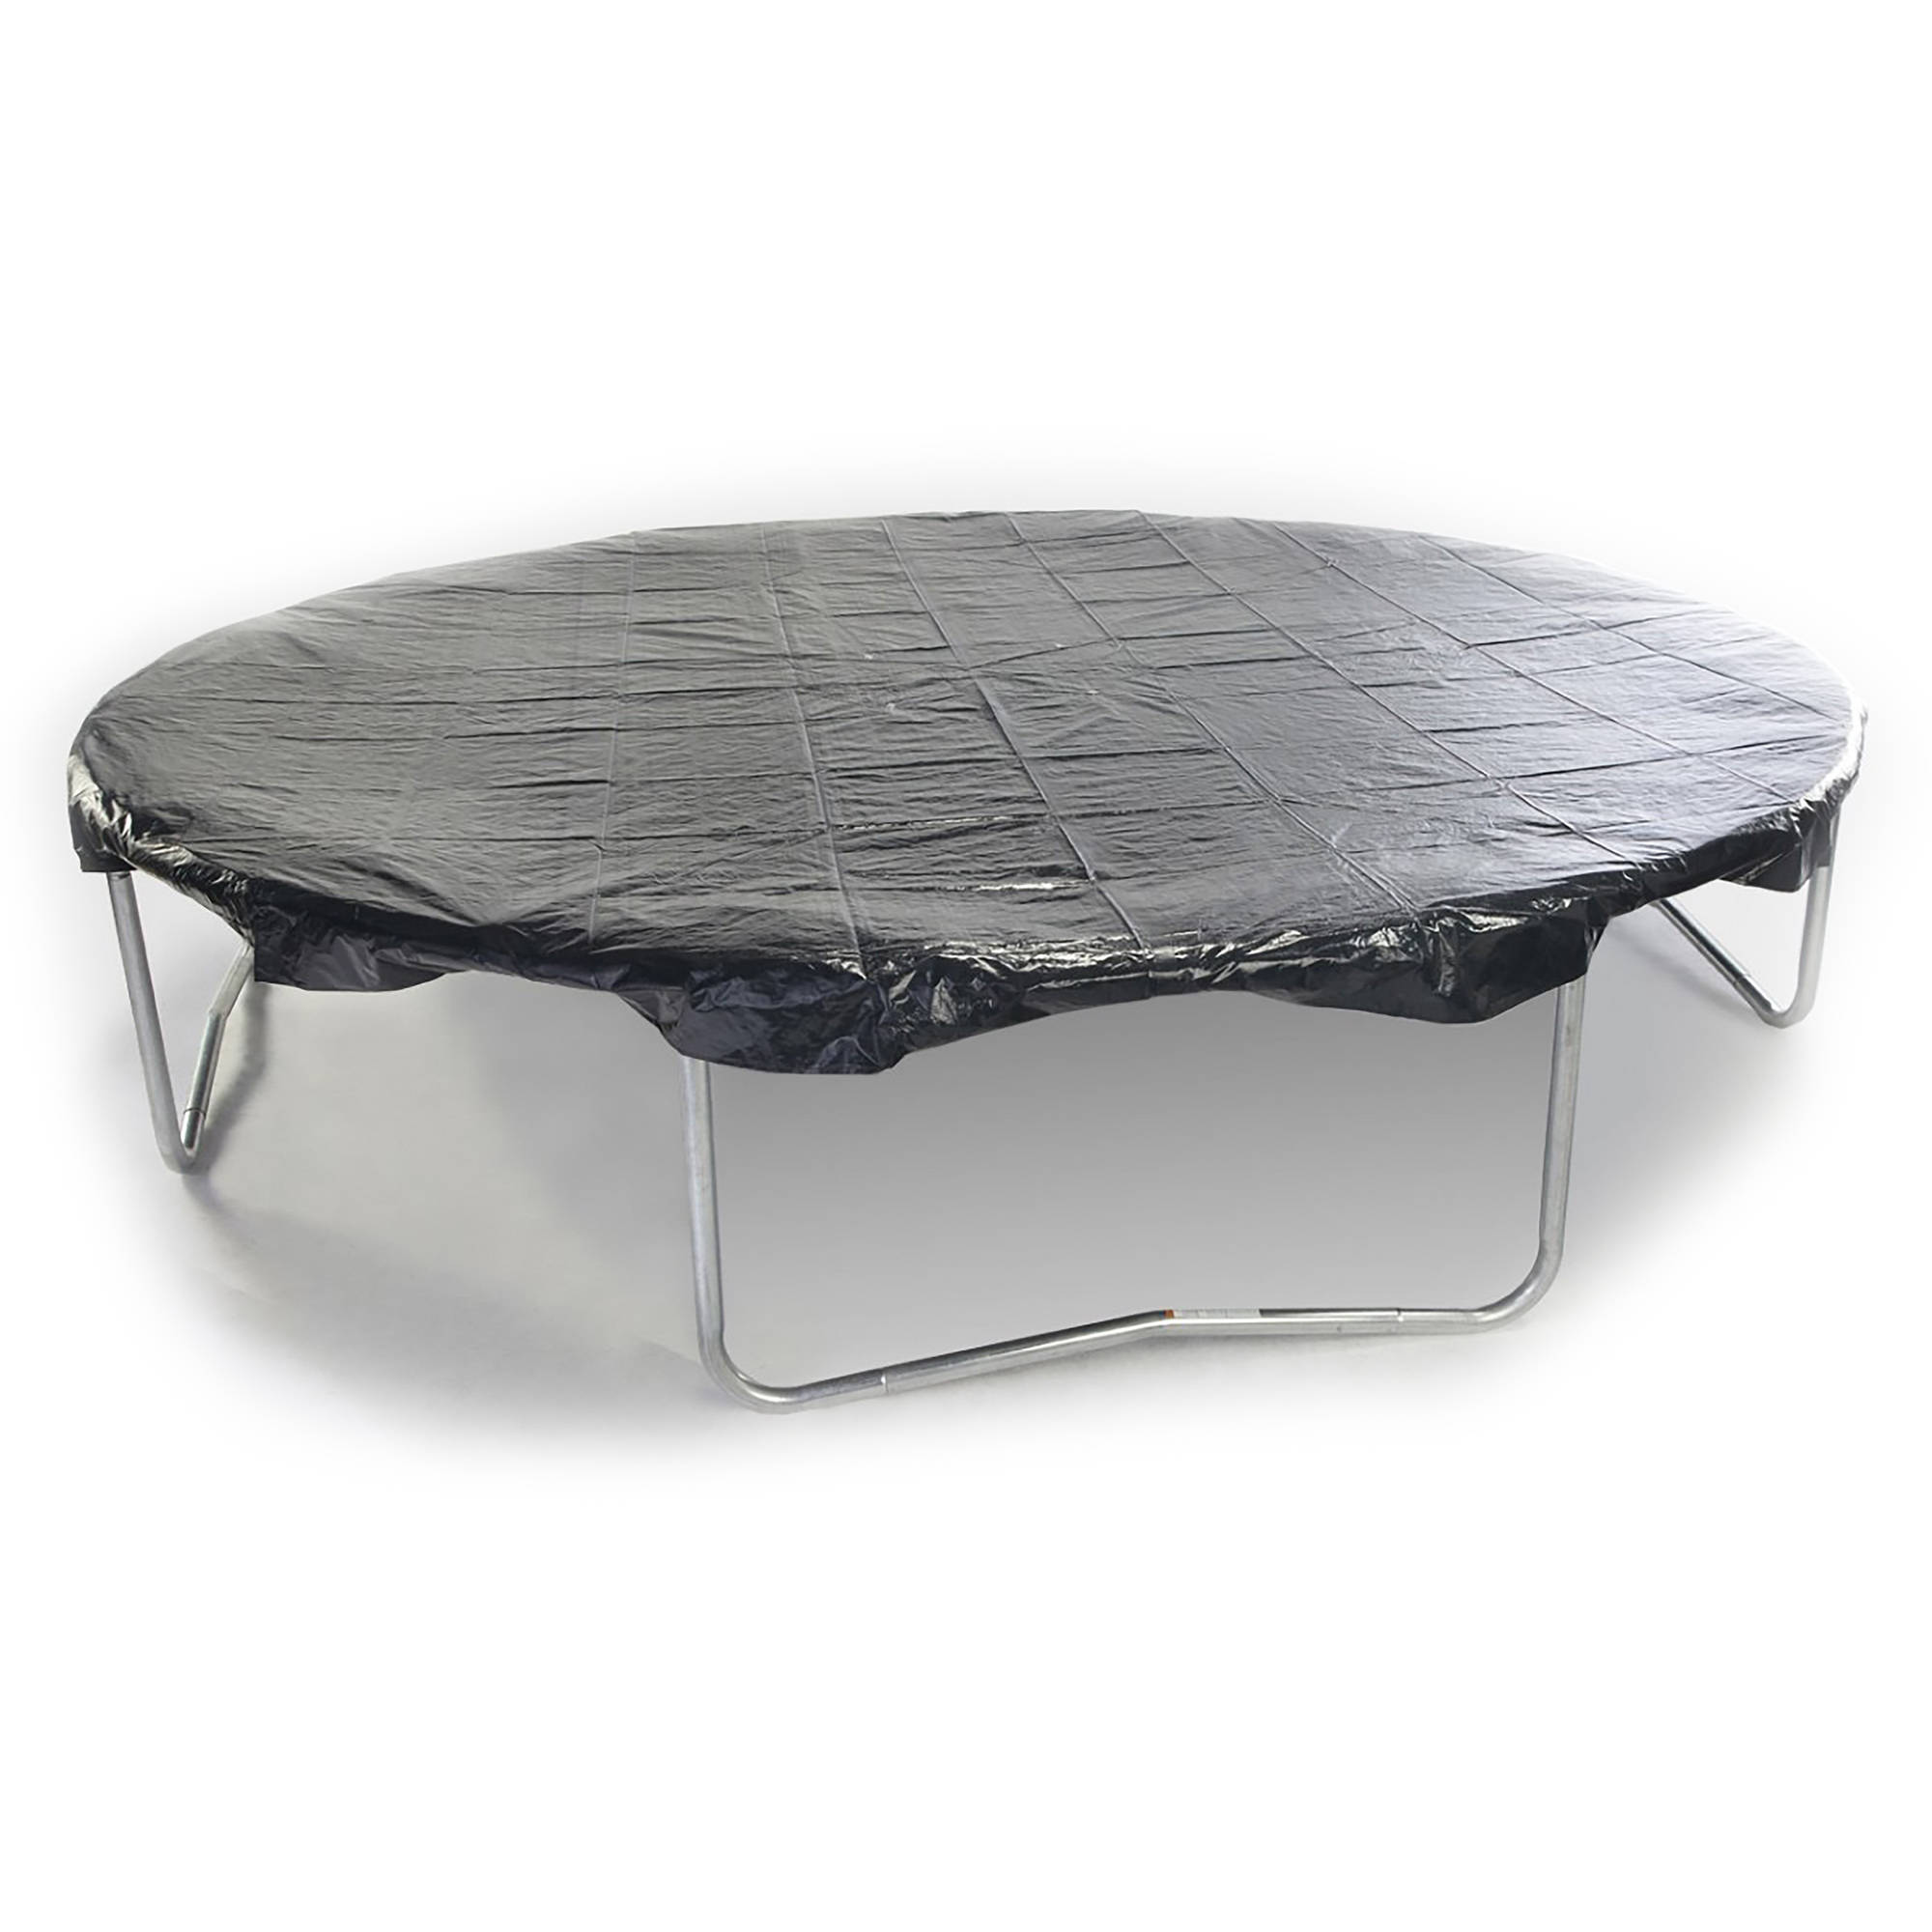 JumpKing 15 ft. Black Trampoline Protective Weather Cover â Accessory for Round Trampolines Fits 15 ft.